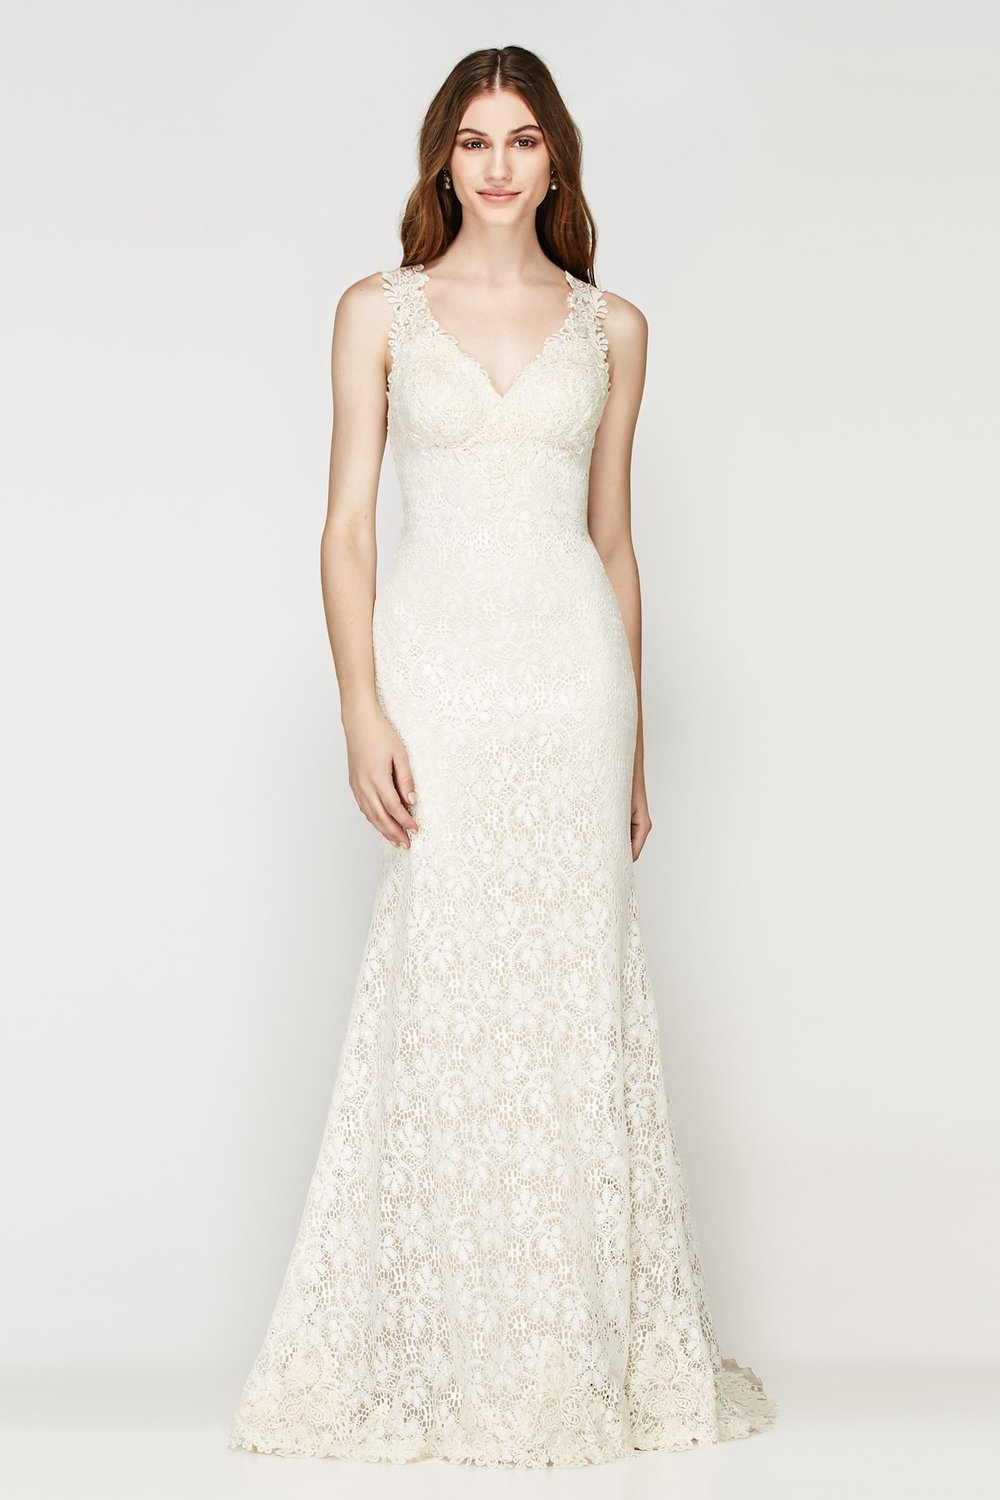 Petra -  Stunning long lace gown with an illusion back and v neckline  Colors available - Oatmeal